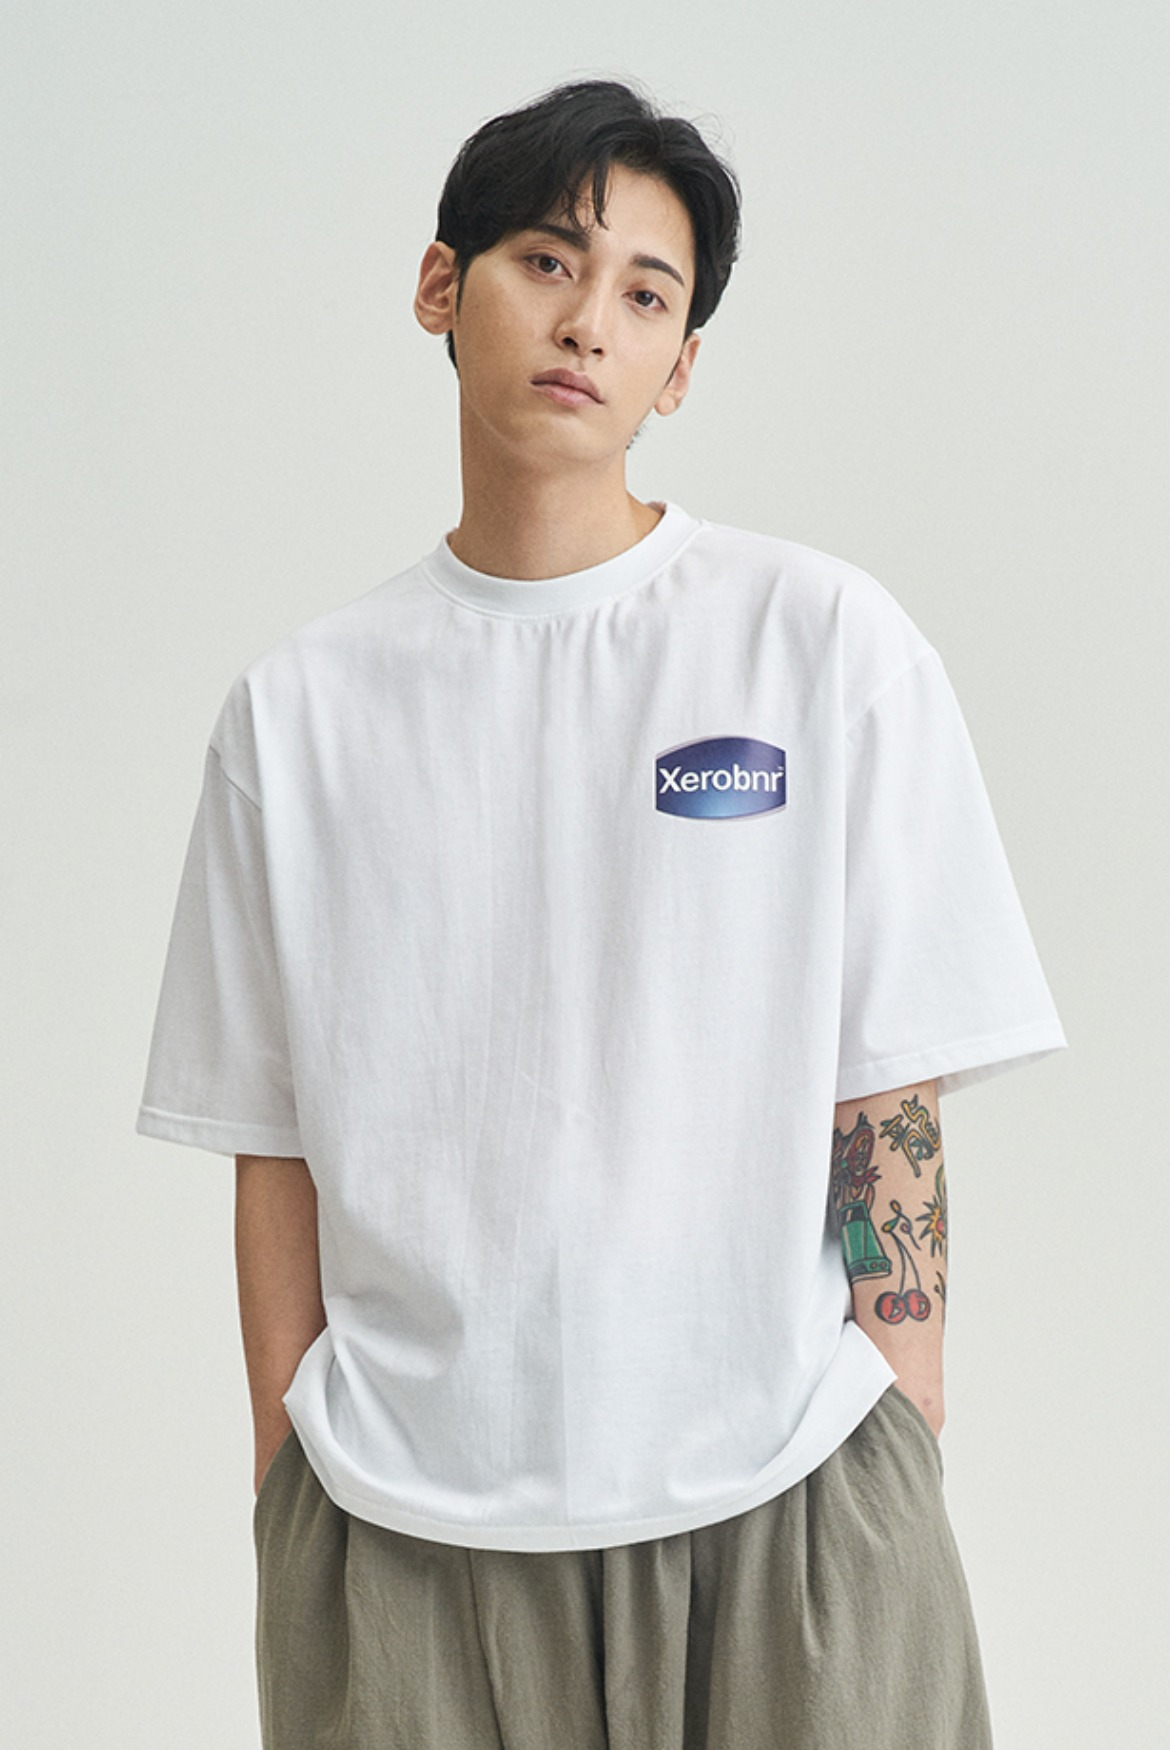 Xerobnr Lotion T-Shirts [White]